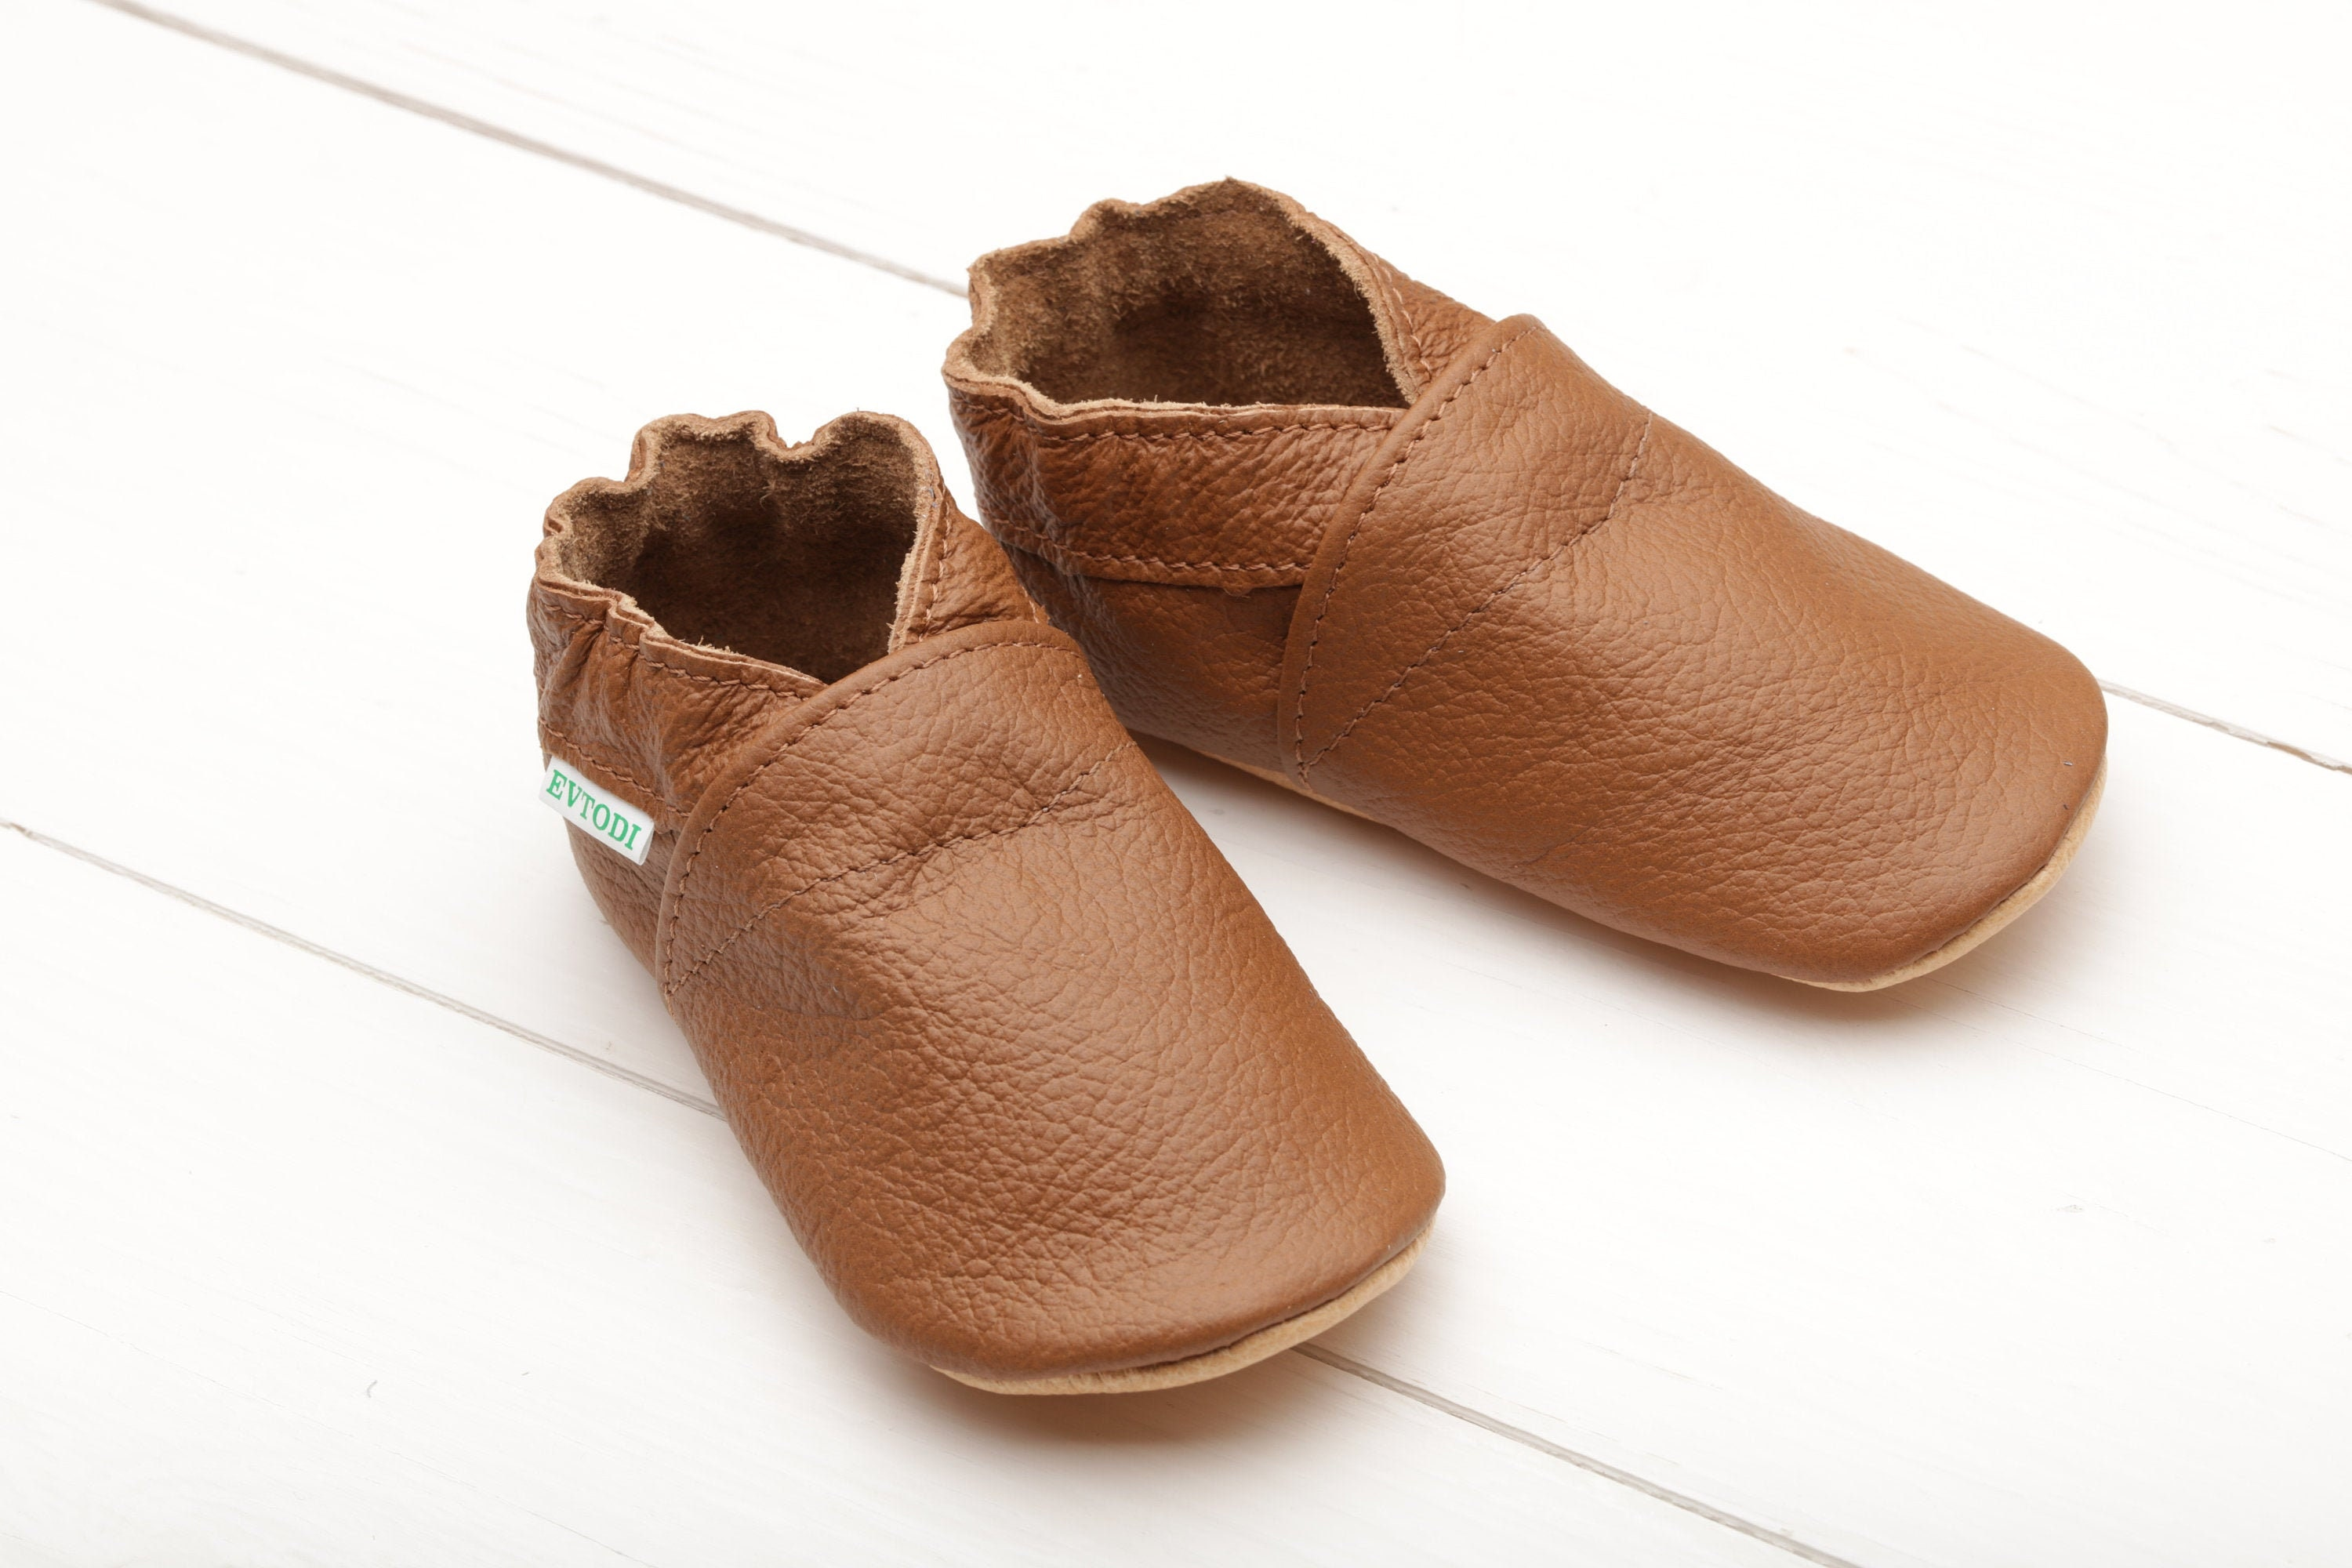 8923bda02e799 Caramel, Baby Shoes, Leather Baby Shoes, Soft Sole Baby Shoes, Girls', Crib  Shoes, Boys', Infant Shoes, Baby Moccasins, Toddler Shoes, Gifts